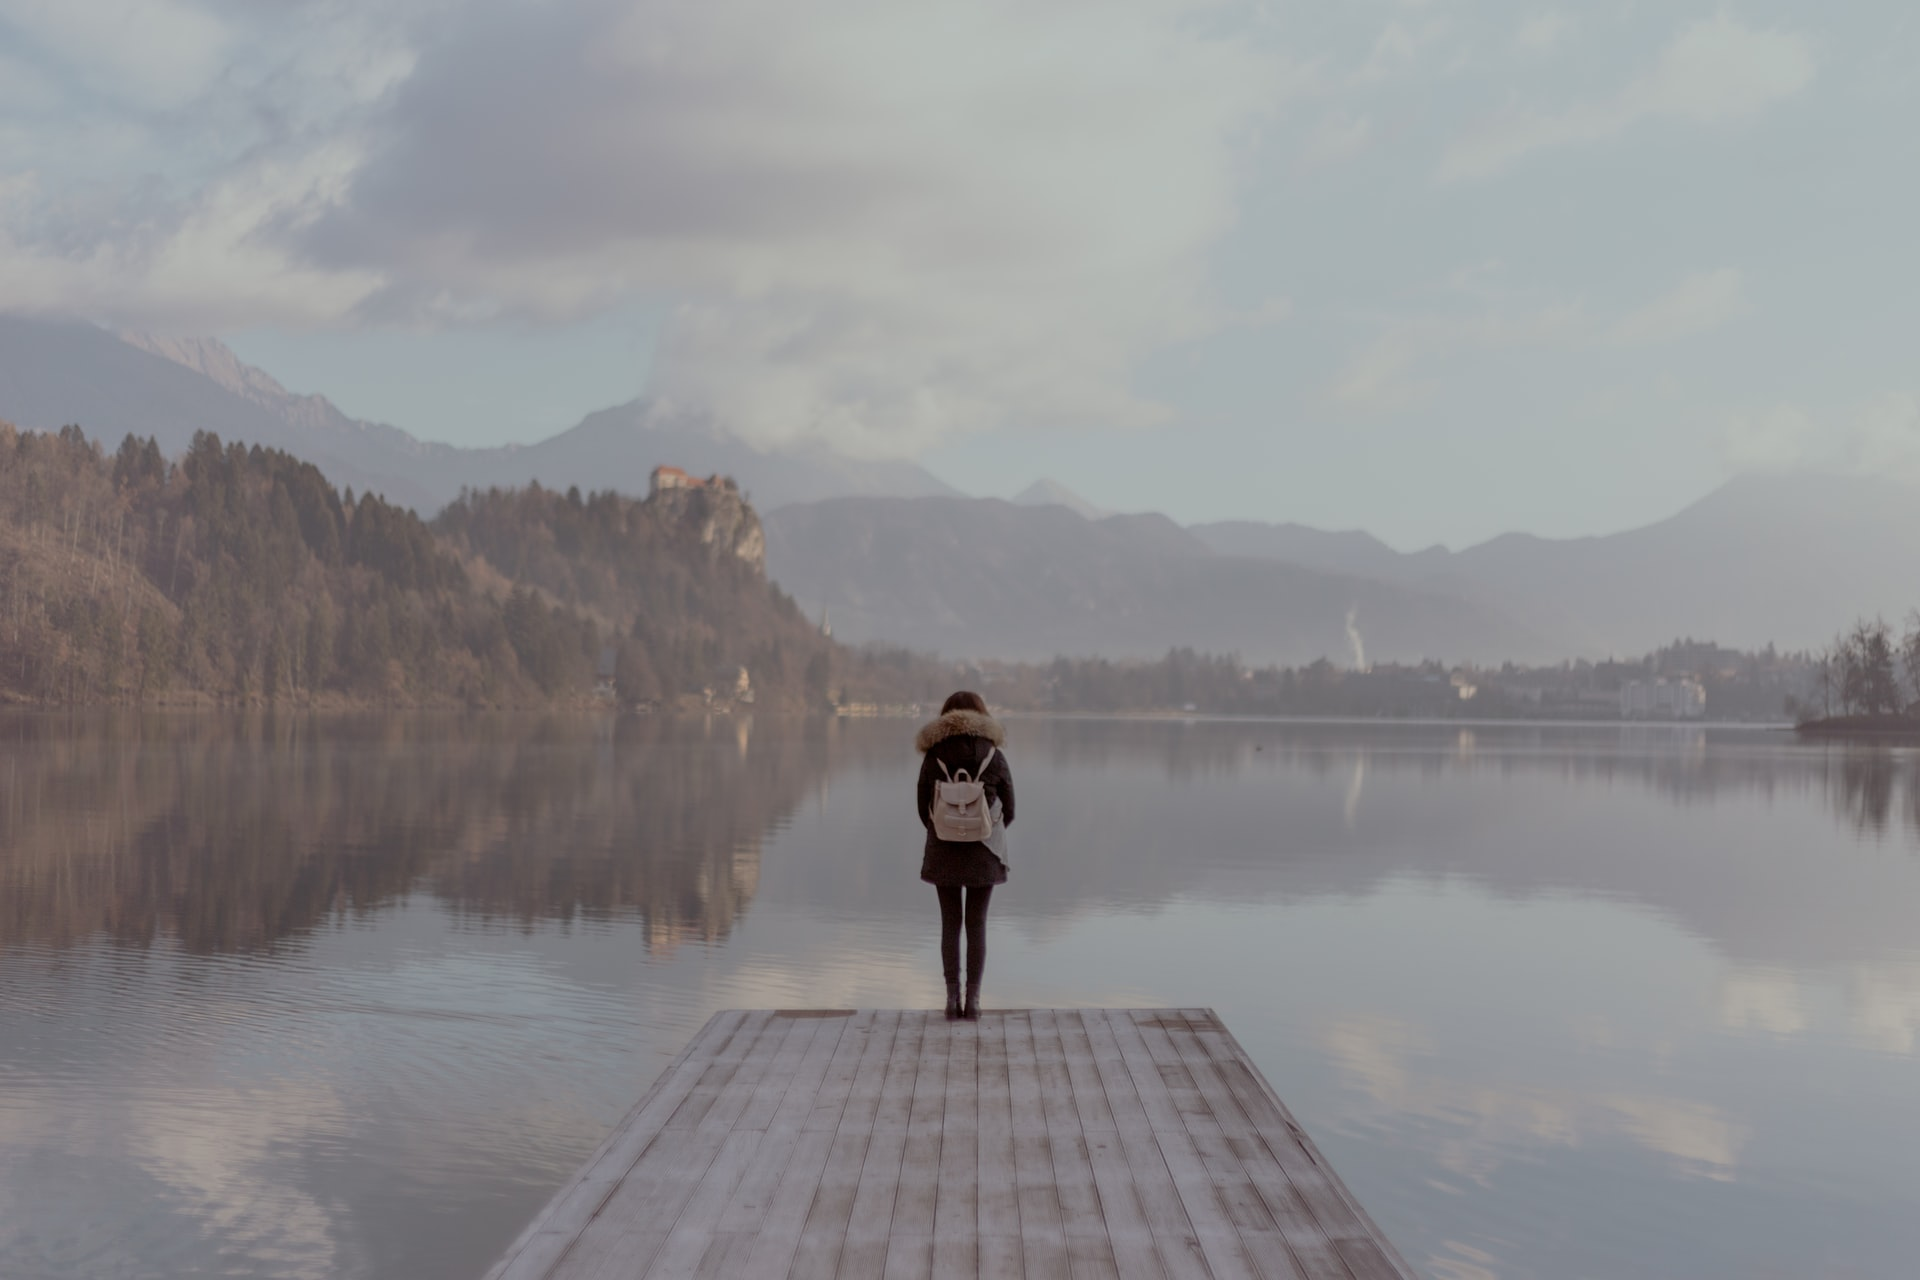 Ungraded image of a woman standing on a pier in front of a lake. Shot on Arri Alexa